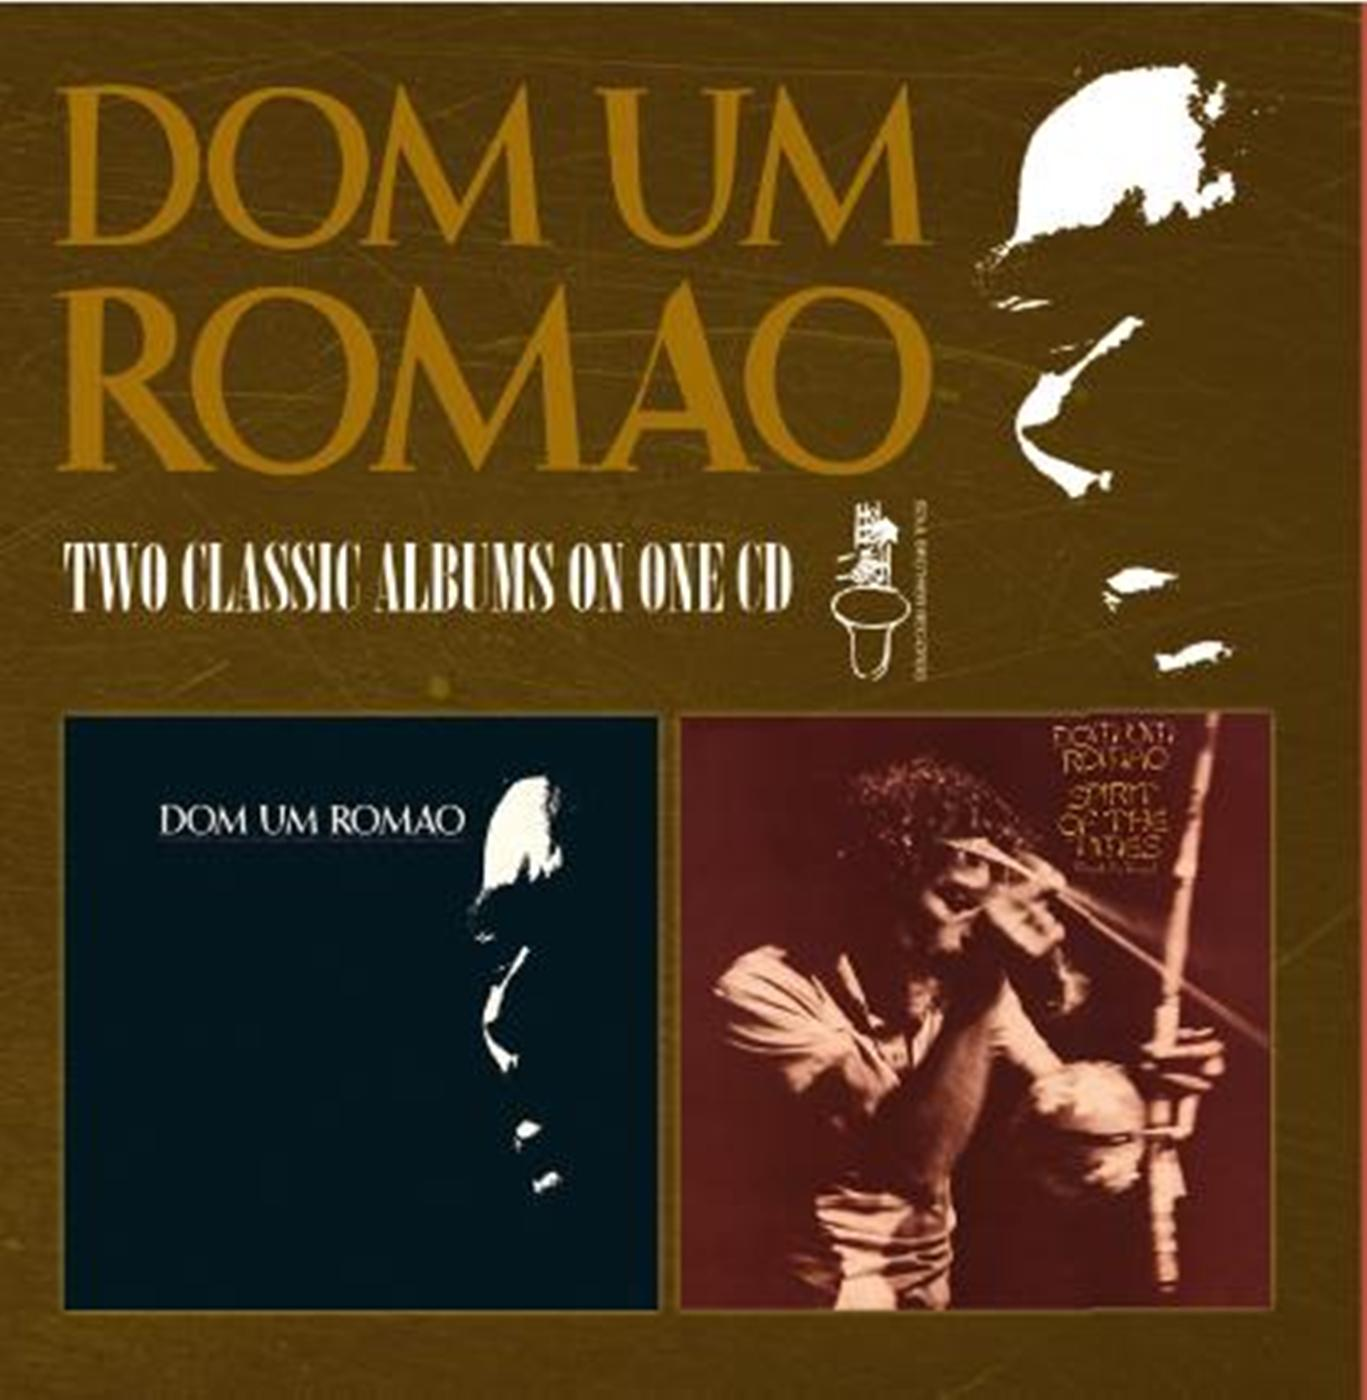 Dom Un Romao/SELF TITLED & SPIRIT OF CD